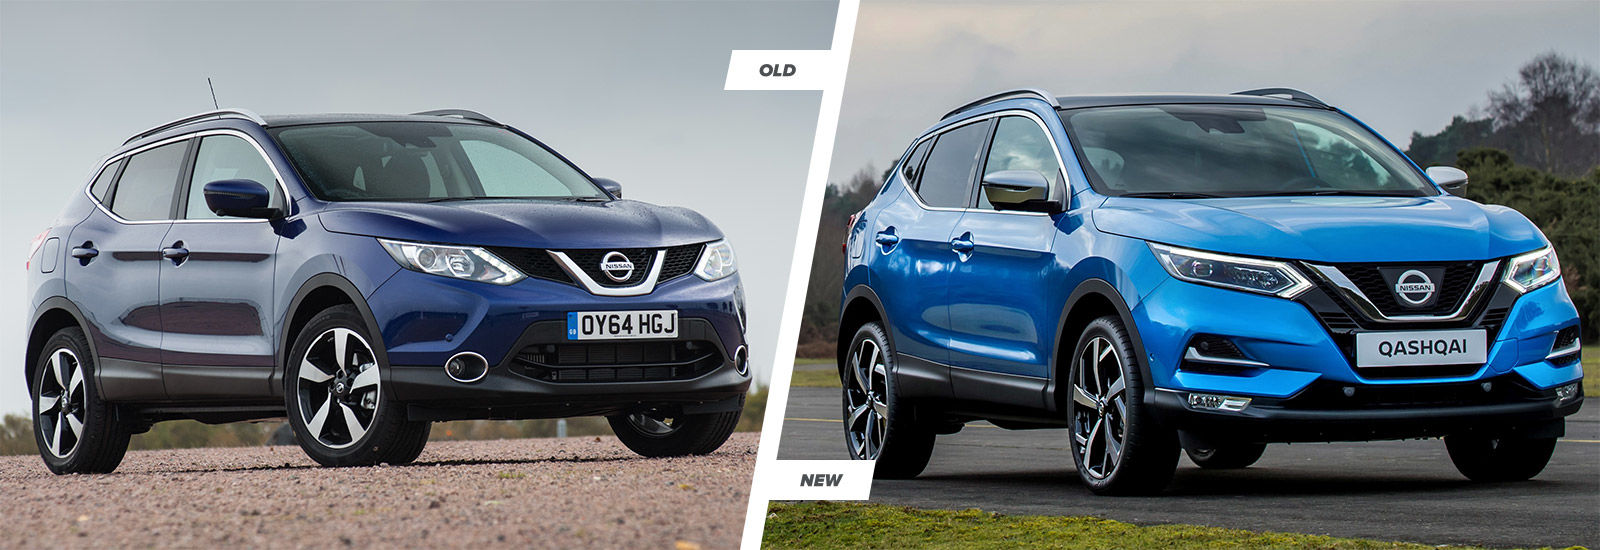 nissan qashqai forum 2018 nissan qashqai photos. Black Bedroom Furniture Sets. Home Design Ideas